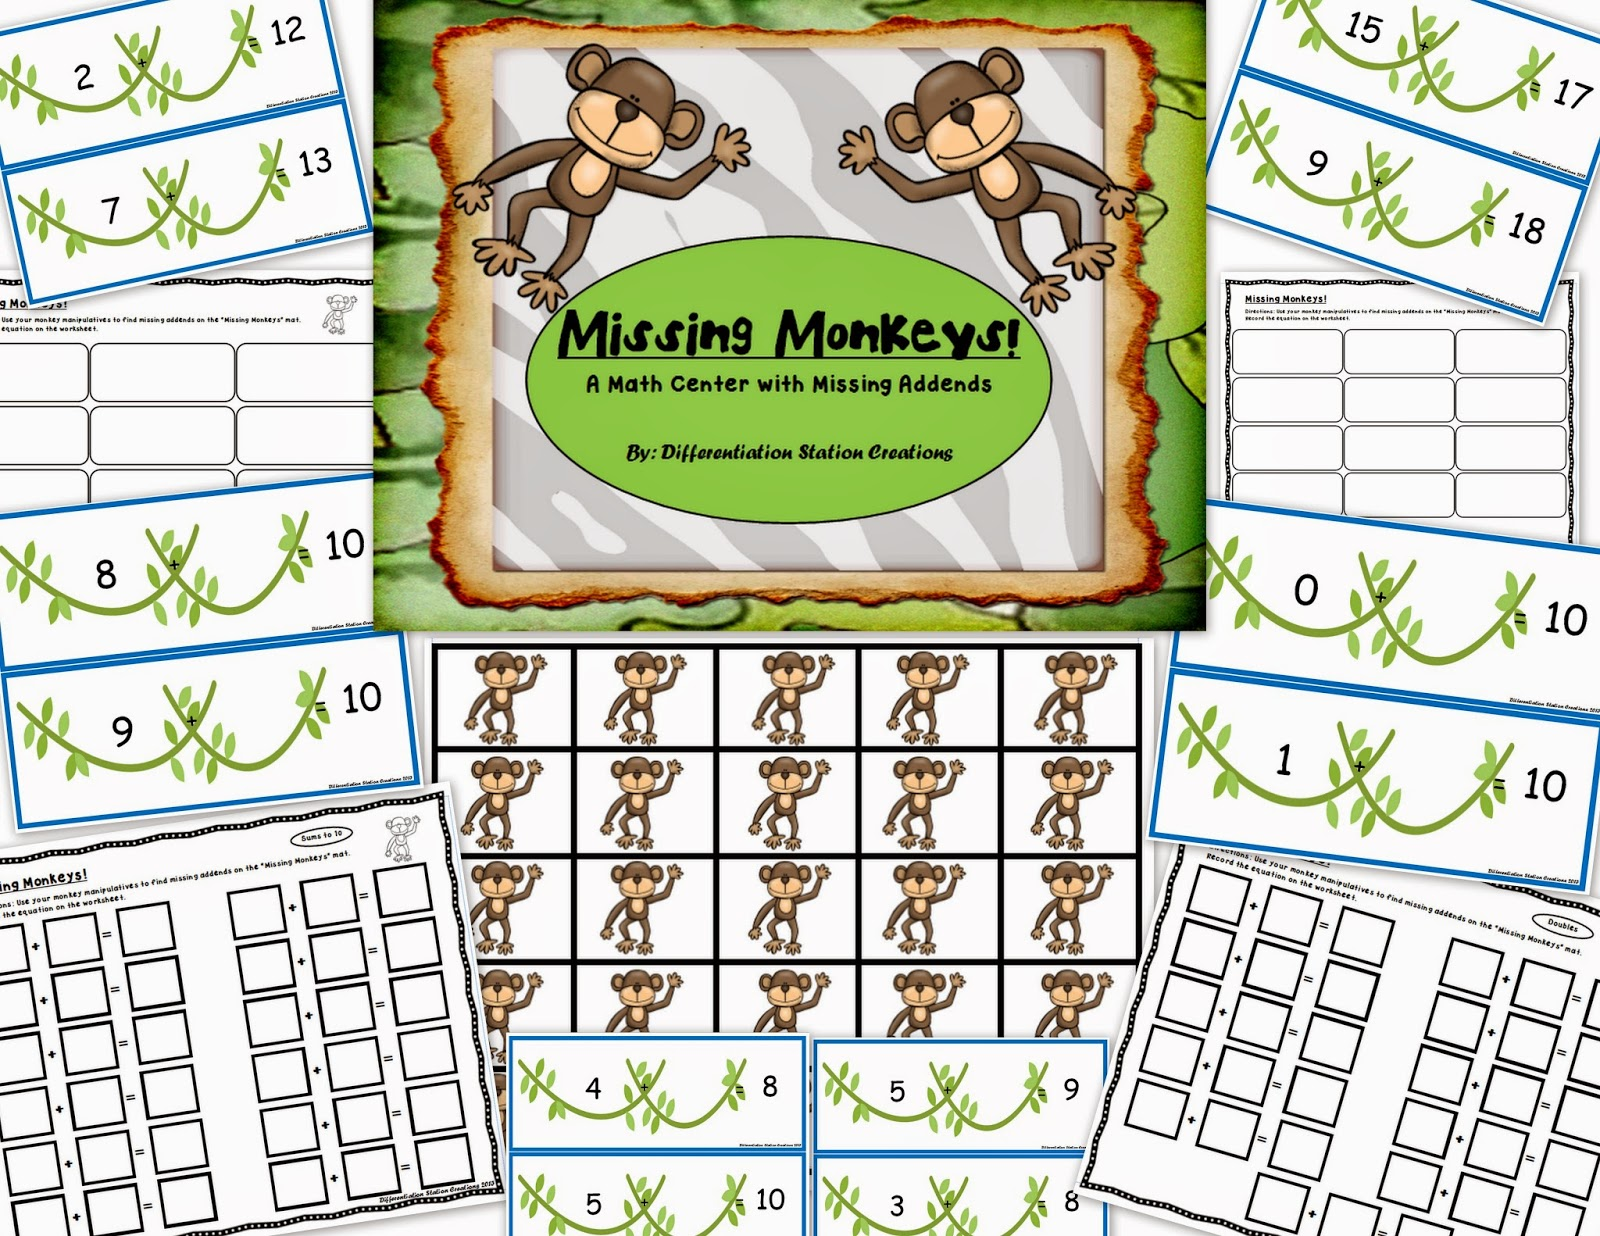 http://www.teacherspayteachers.com/Product/Missing-Monkeys-Math-Centers-with-Missing-Addends-Differentiated-678445